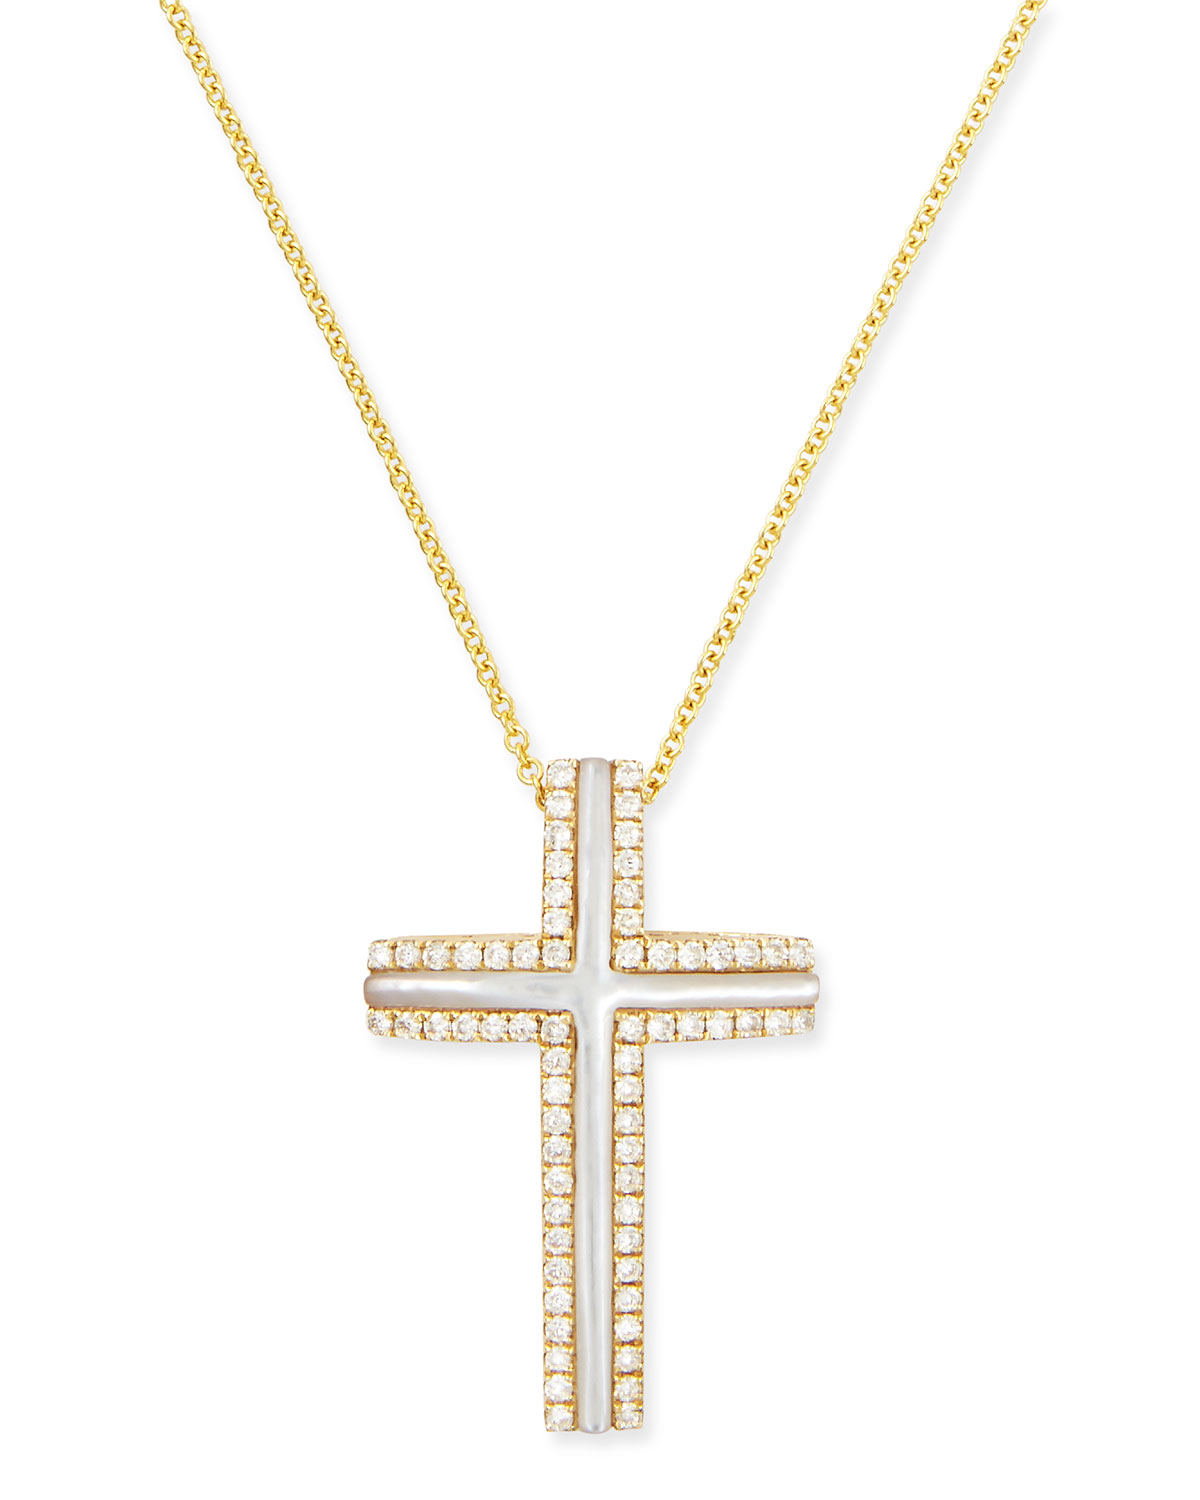 77c25c9b2e7 Large Gold Cross Necklace - Necklace Wallpaper Gallerychitrak.Org